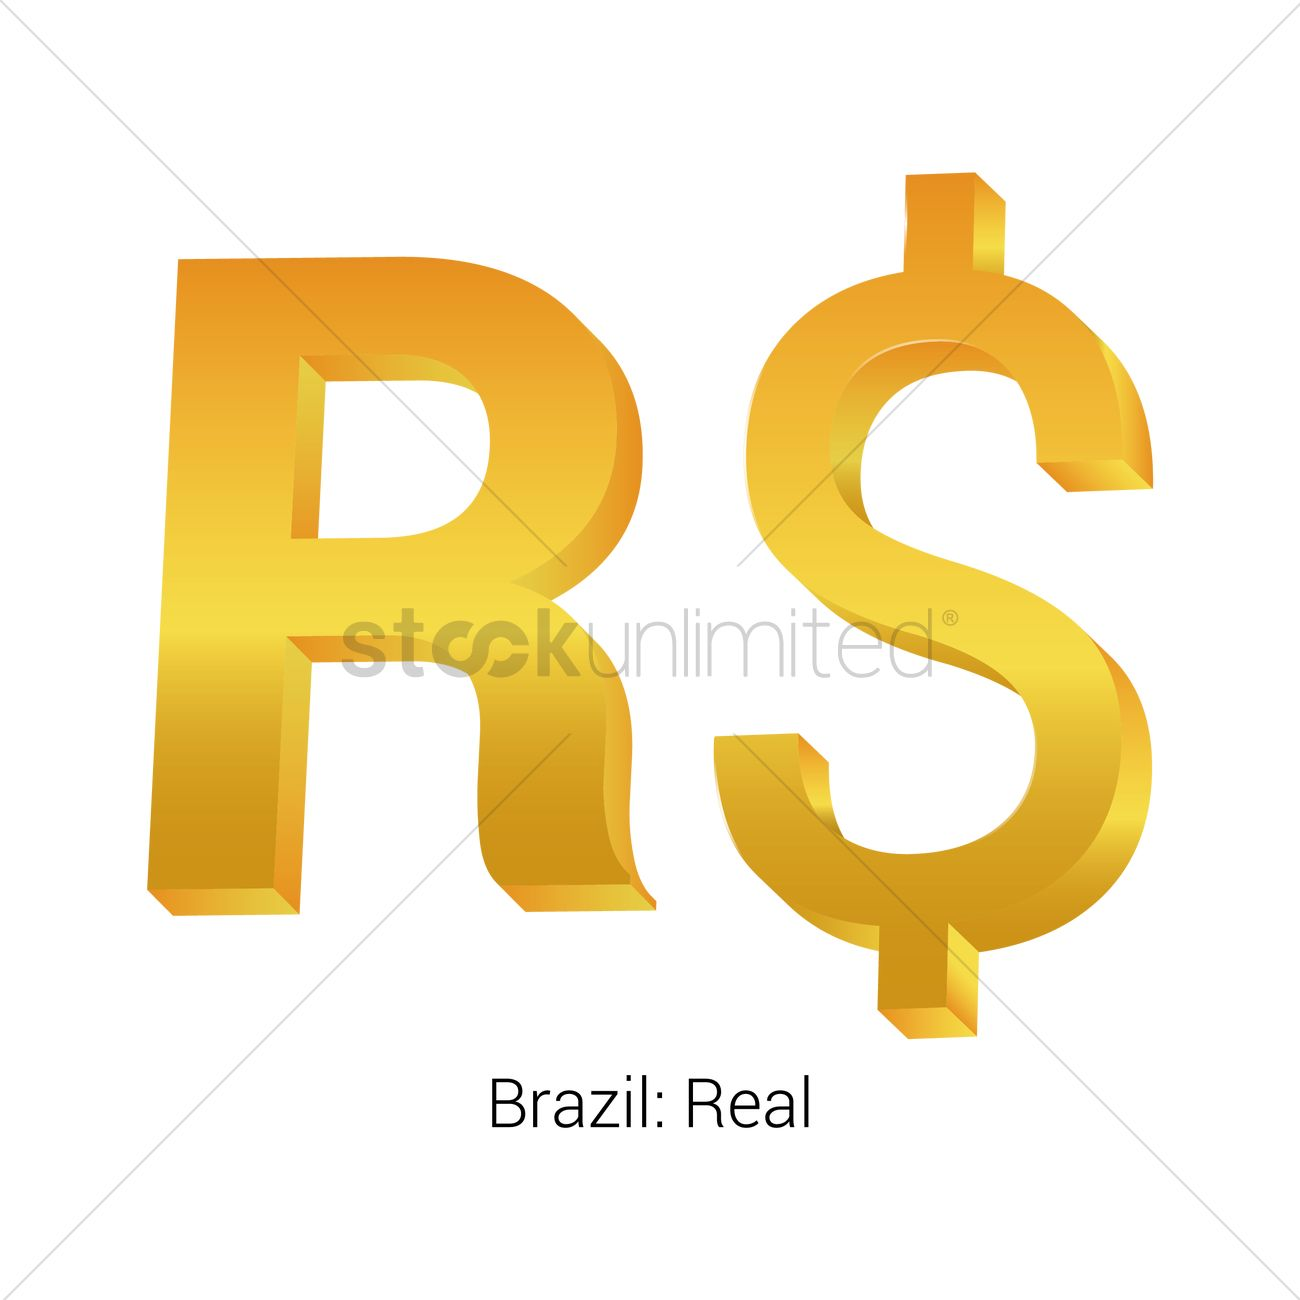 Brazilian Real Symbol Brazil Real Symbol Symbol Symbols Currency